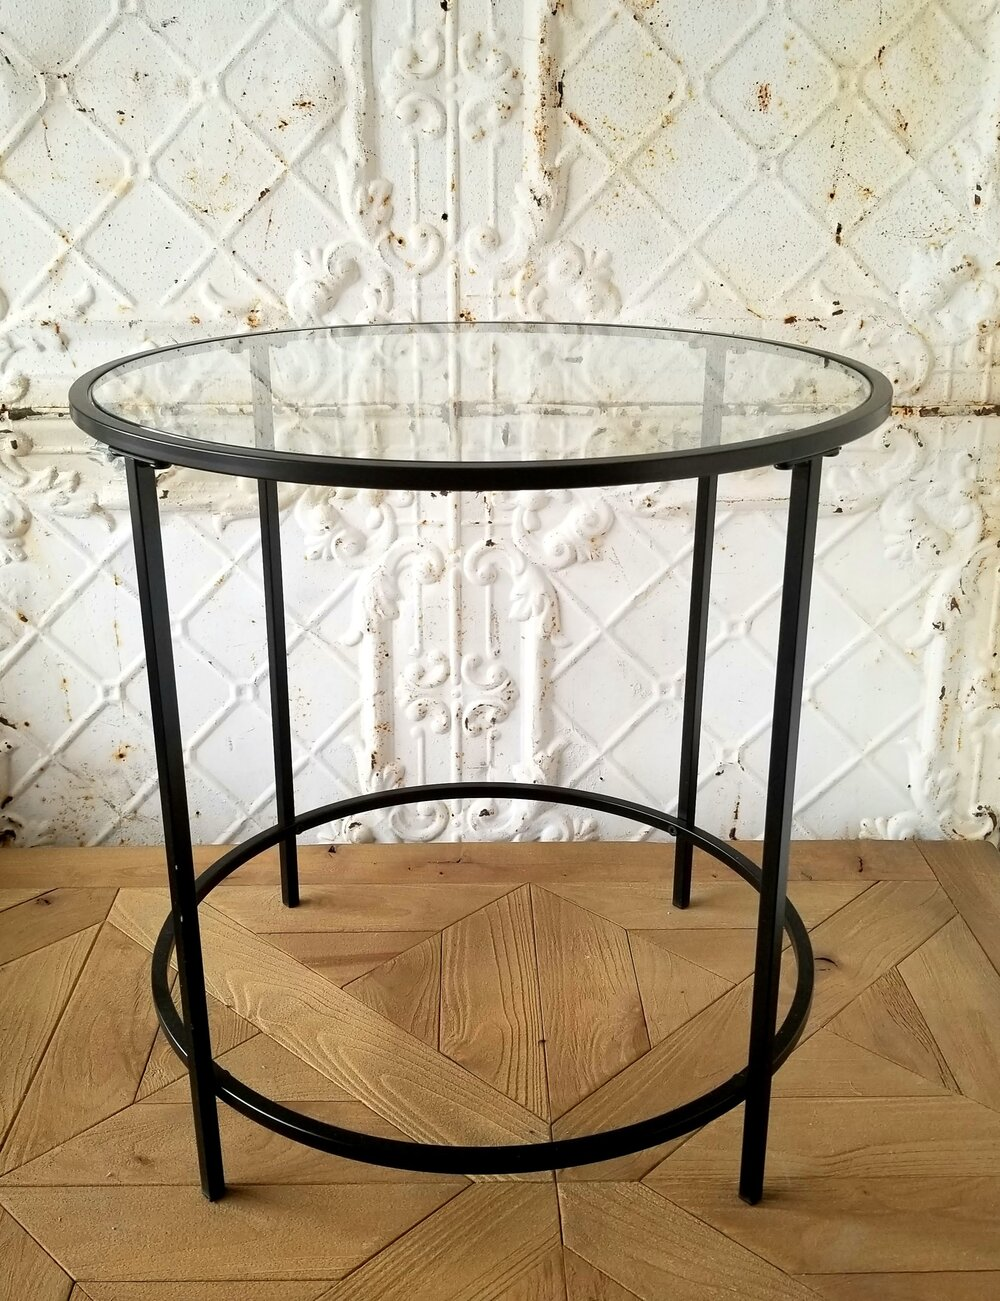 Glass Metal Side Tables Eddy Street Vintage Market - How To Remove Metal From Glass Table